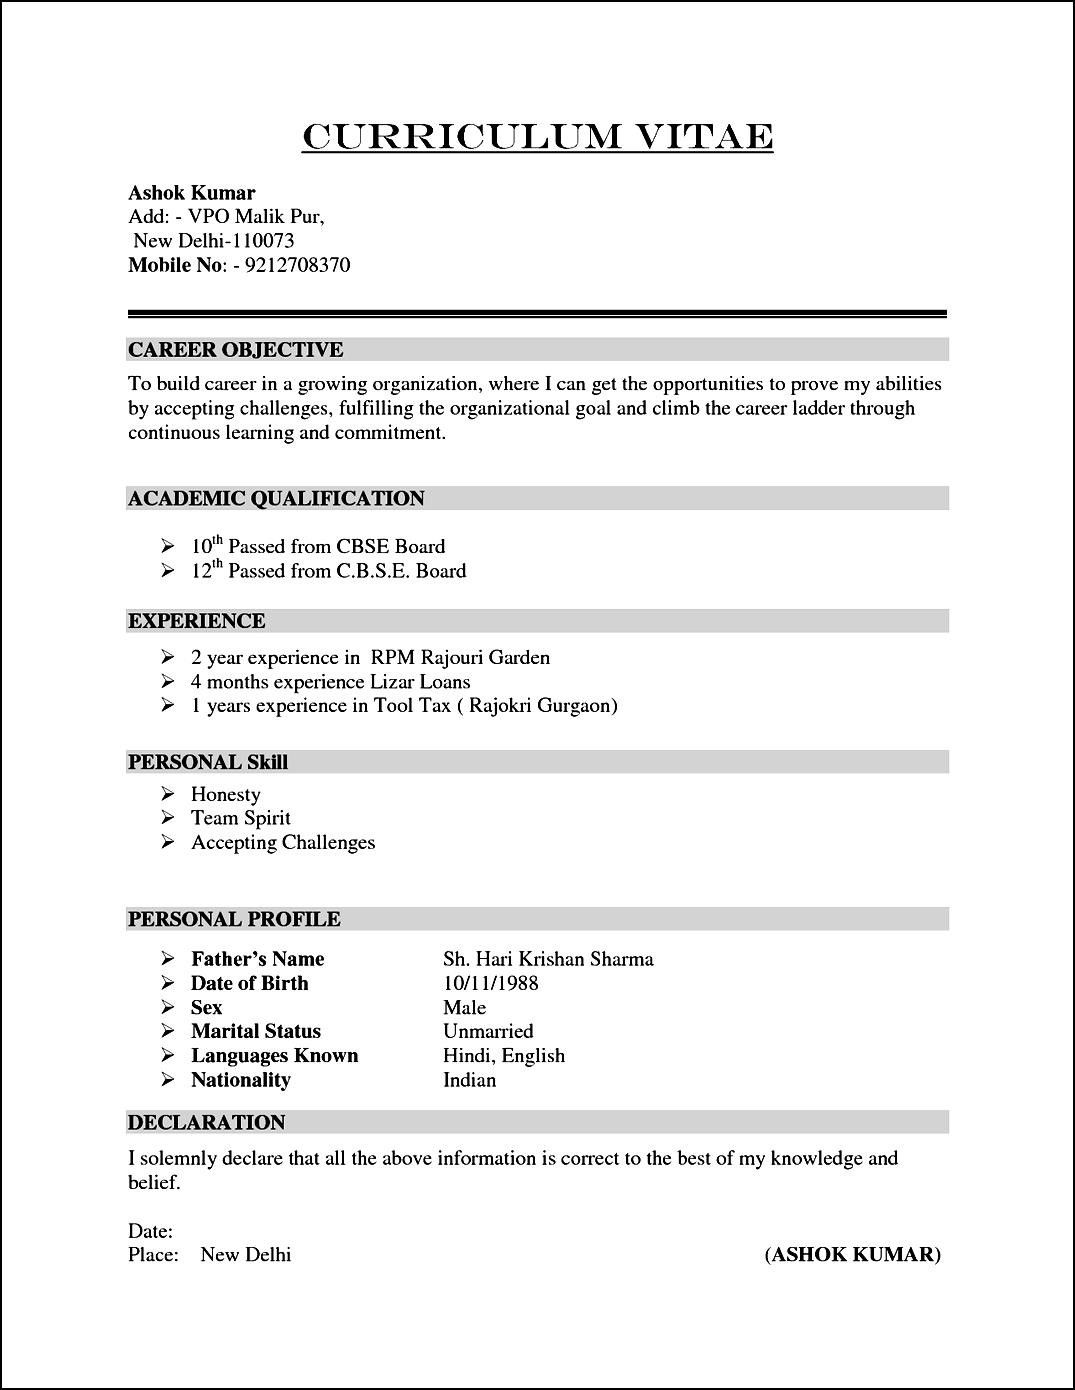 Free Samples Of Resumes Samplecurriculumvitaeresumeforcareerobjectivewithacademic